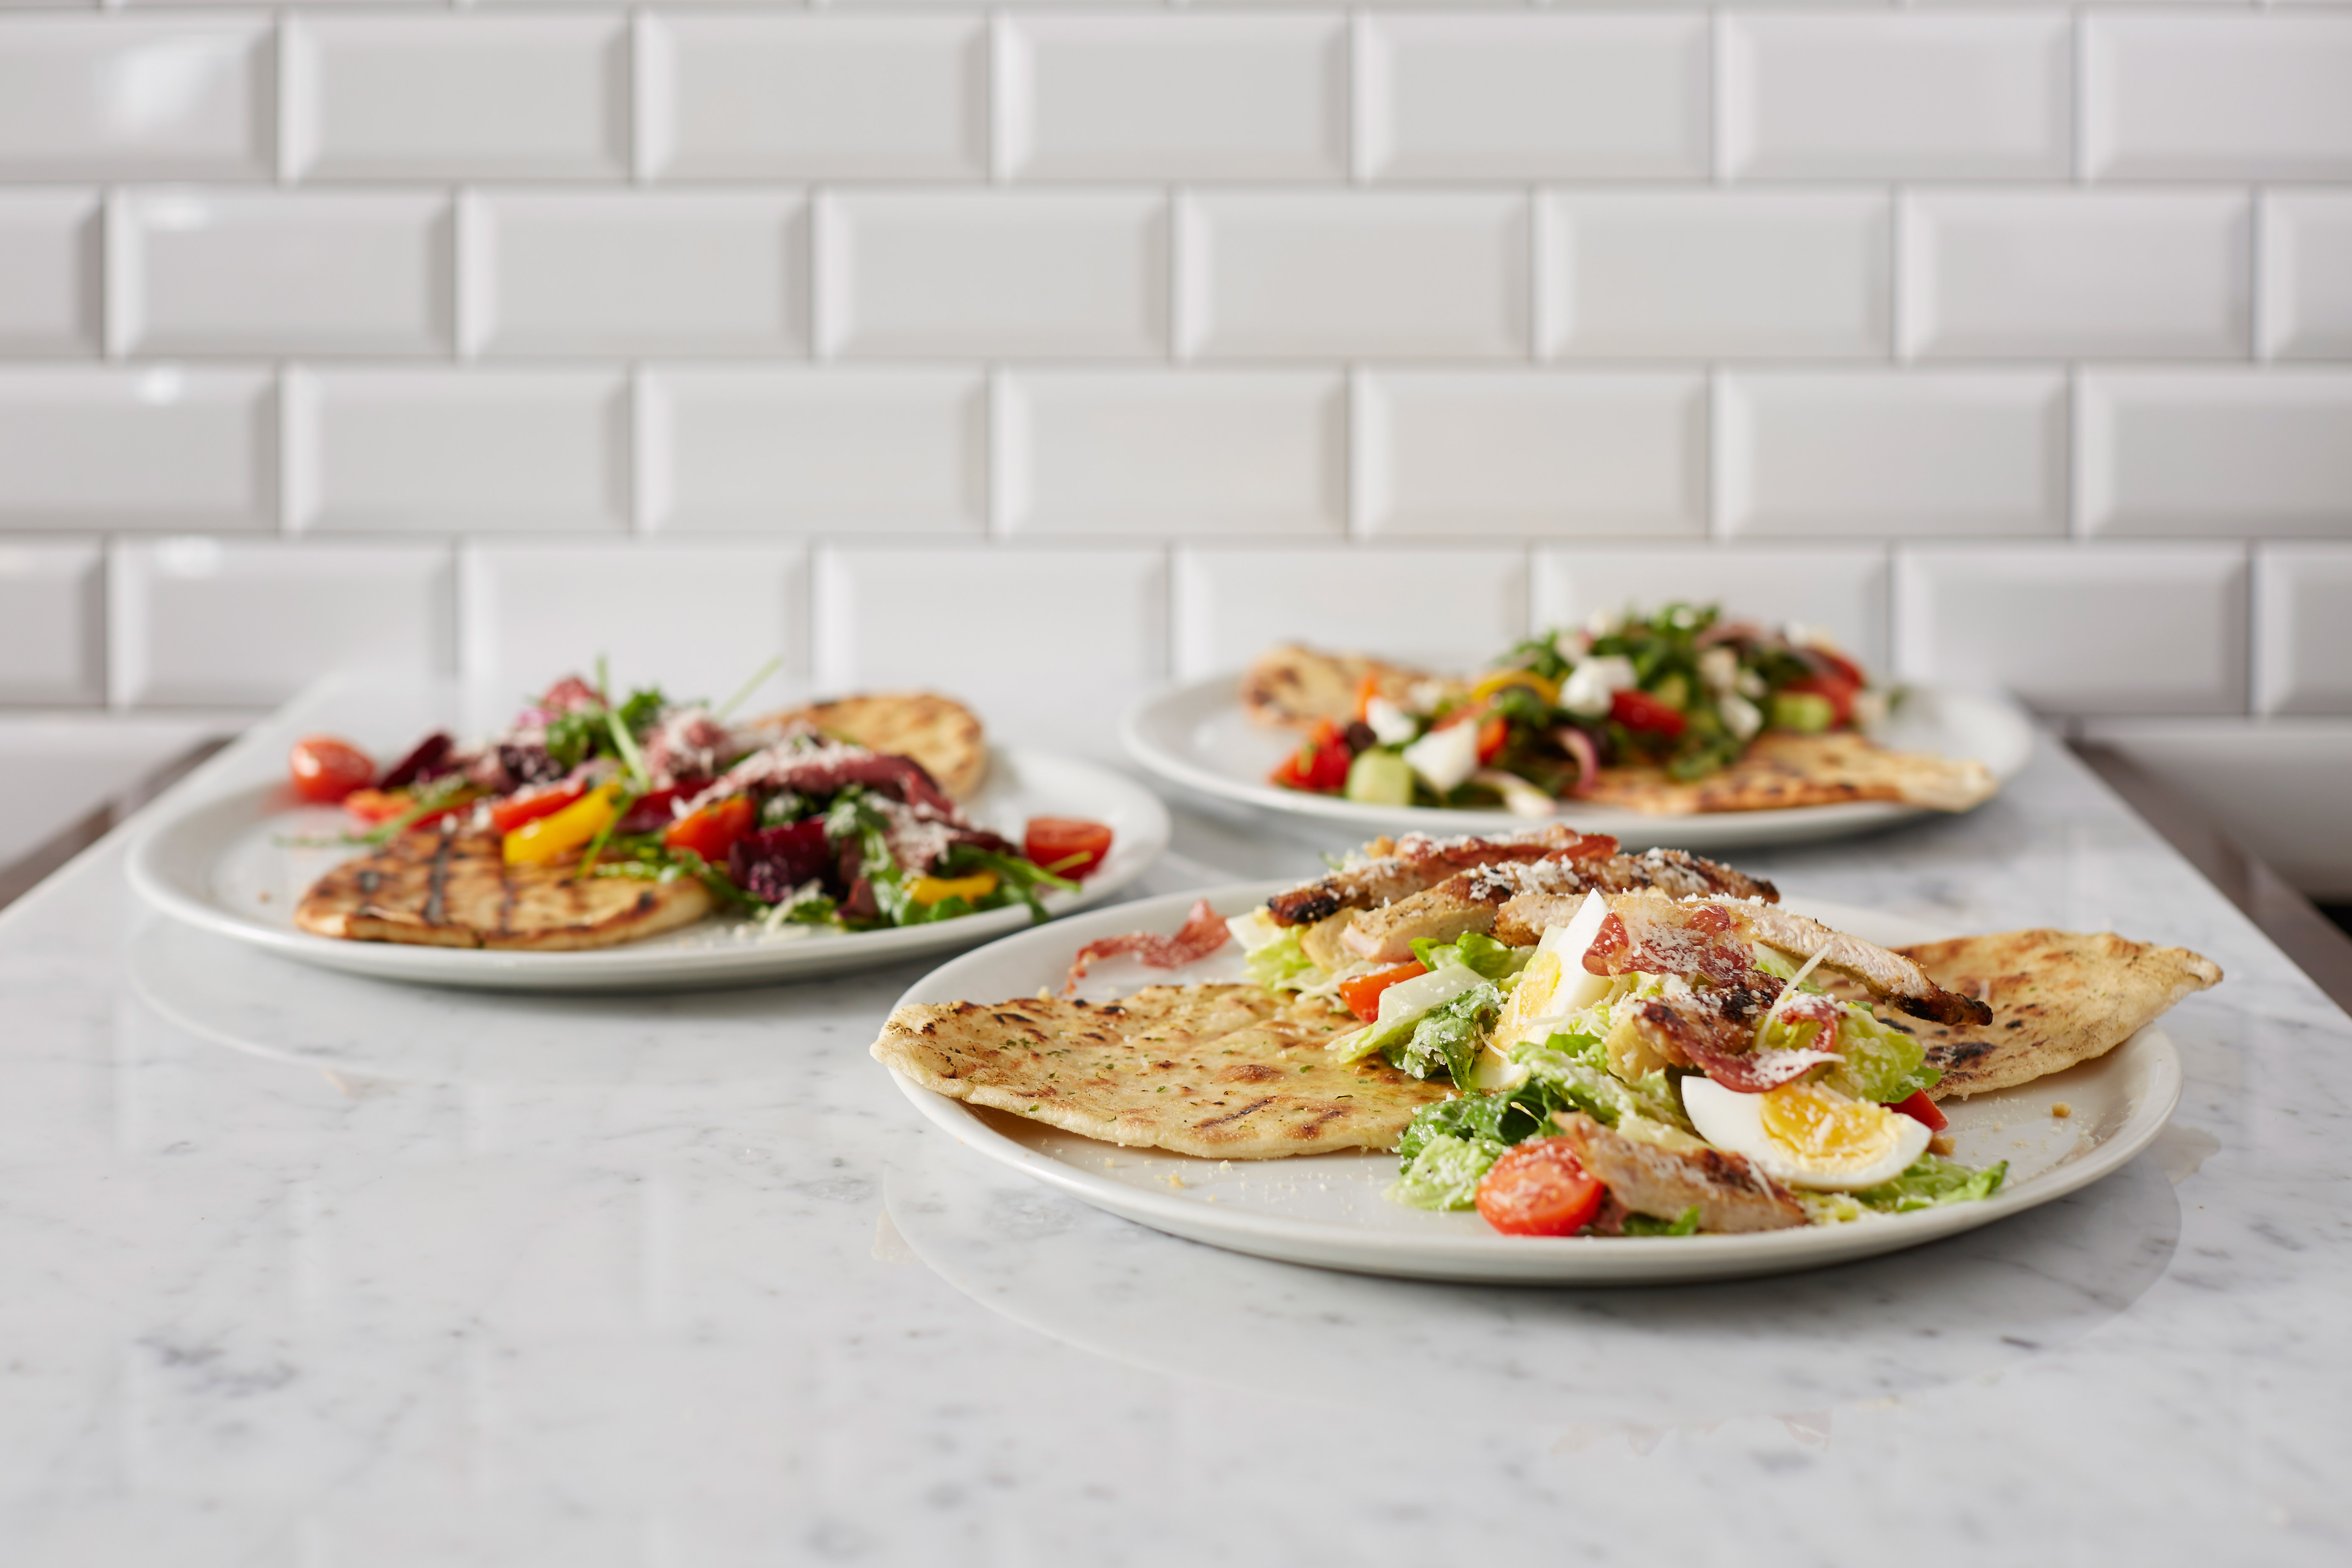 Reserve a table at Prezzo - Glass House Street